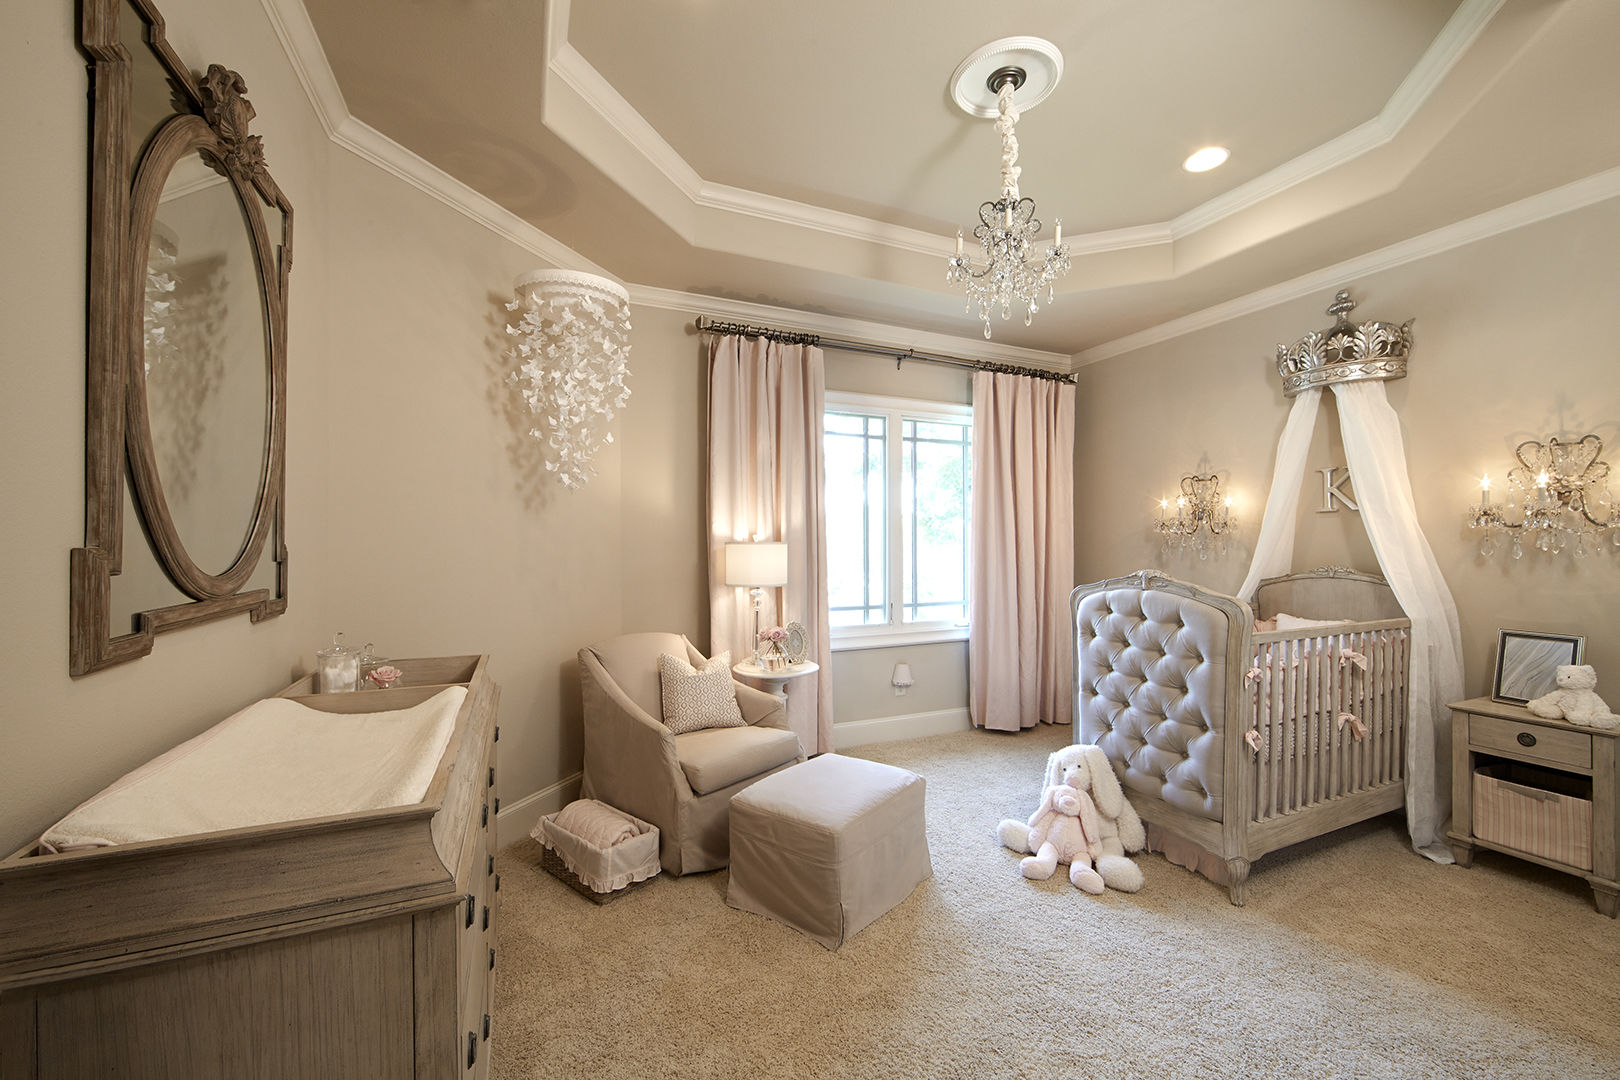 60 - Attractive images of black and white baby nursery room decorating design ideas ...